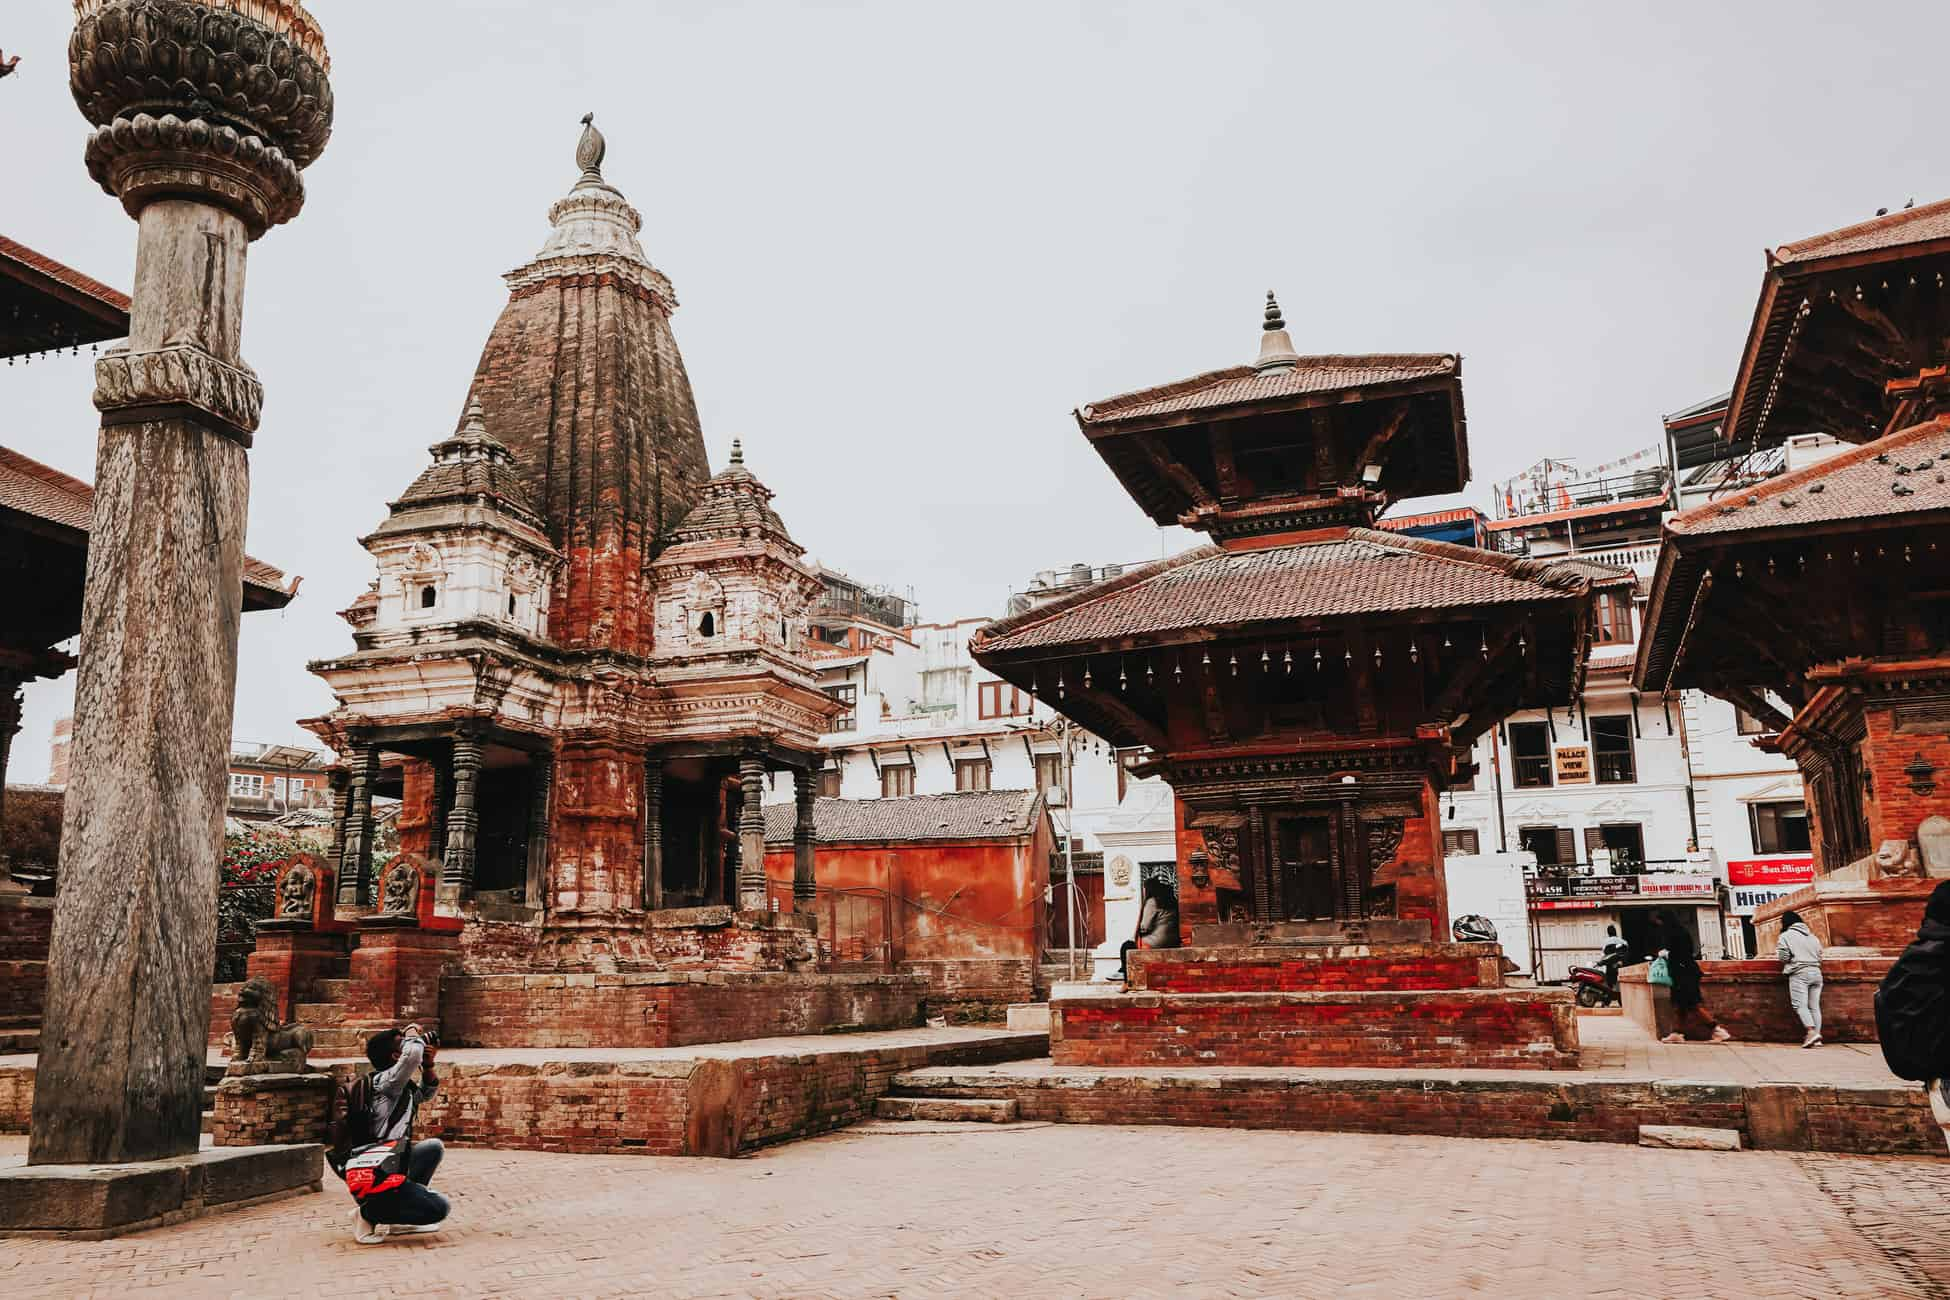 Most Instagrammable places in Kathmandu, Nepal | Best photo spots